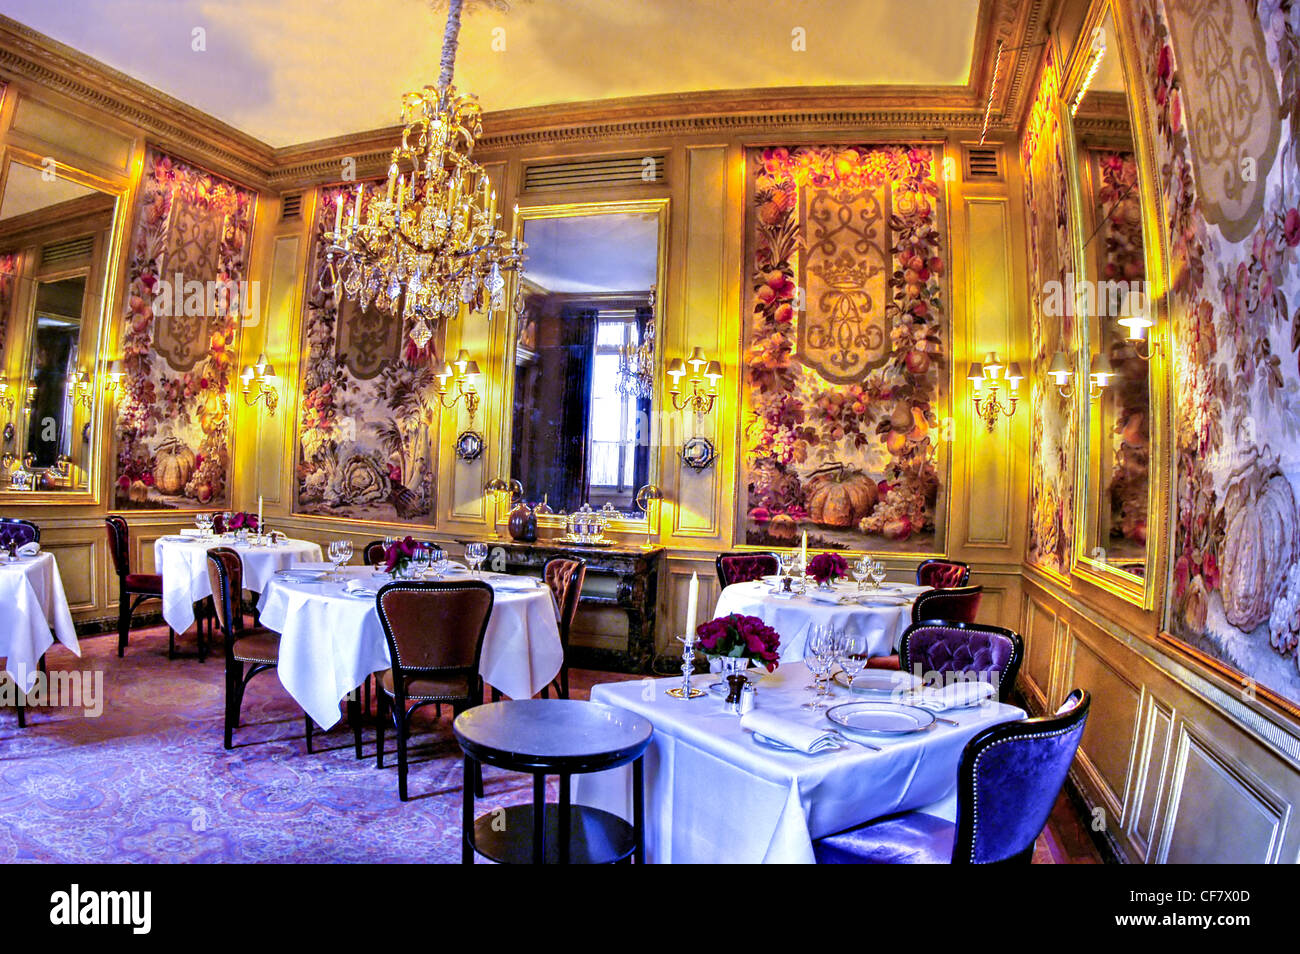 paris france haute cuisine fancy french restaurant l 39 ambroisie stock photo royalty free. Black Bedroom Furniture Sets. Home Design Ideas